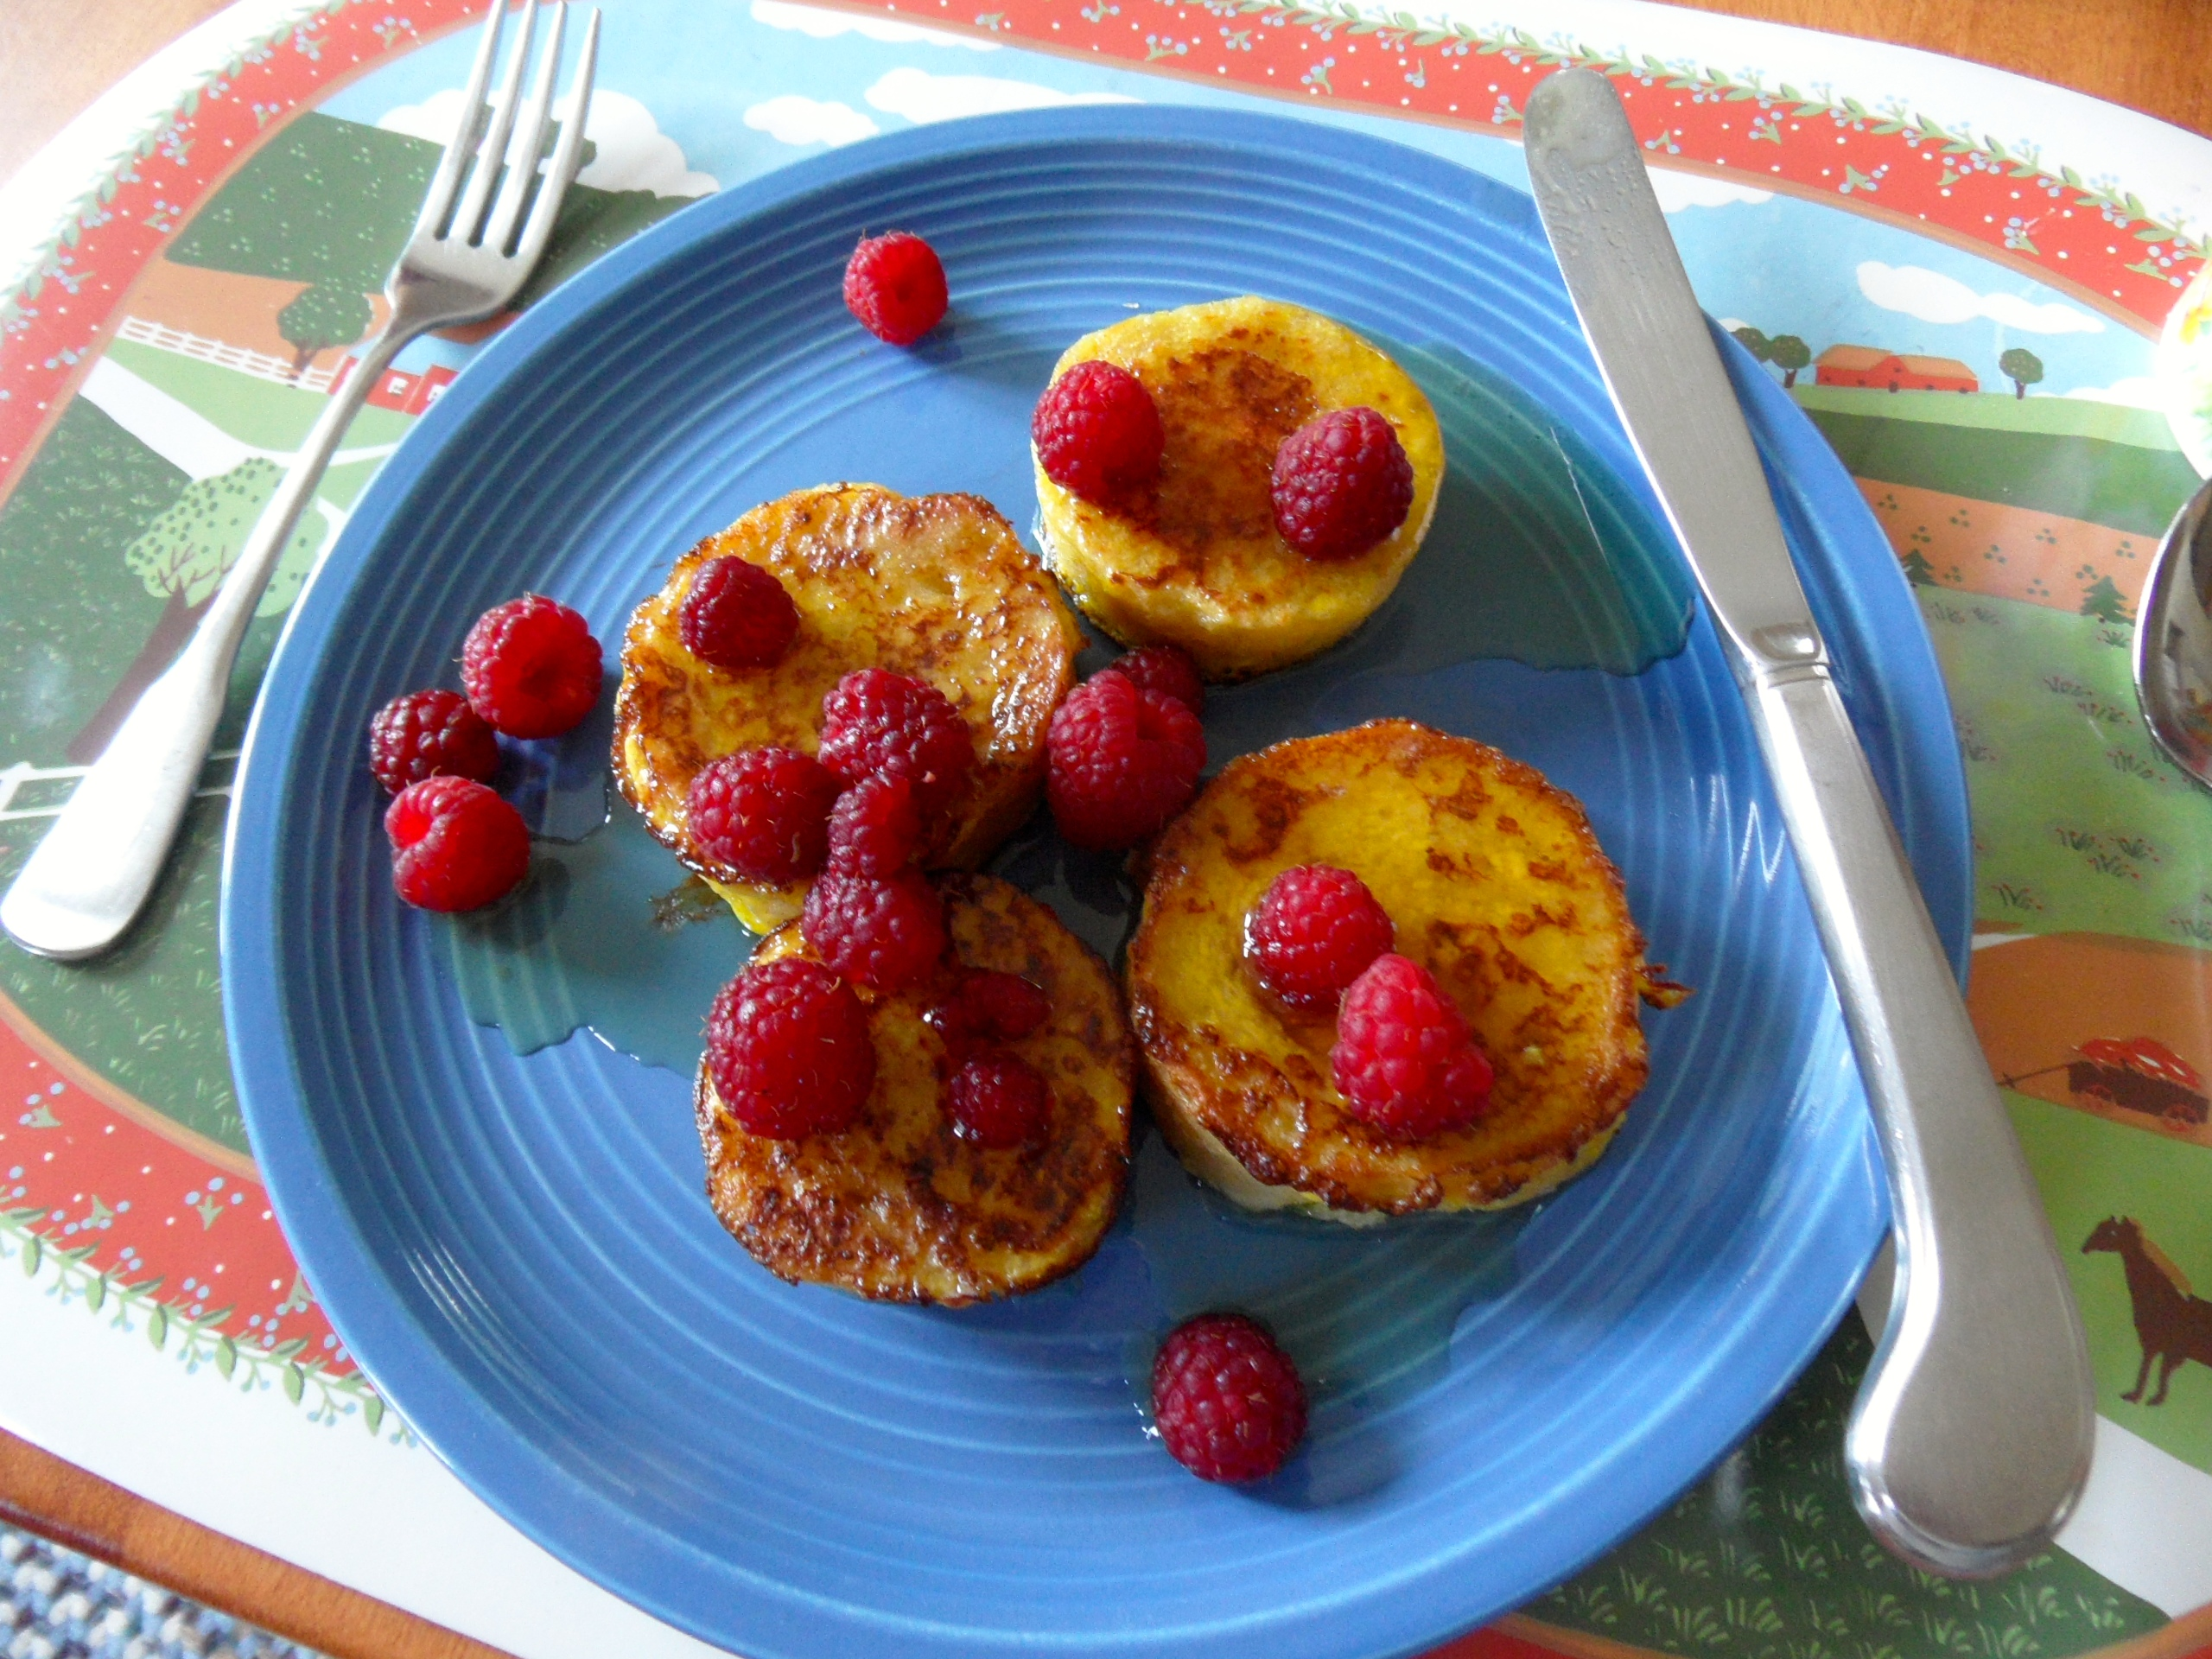 Mmmmm, raspberries and maple syrup!